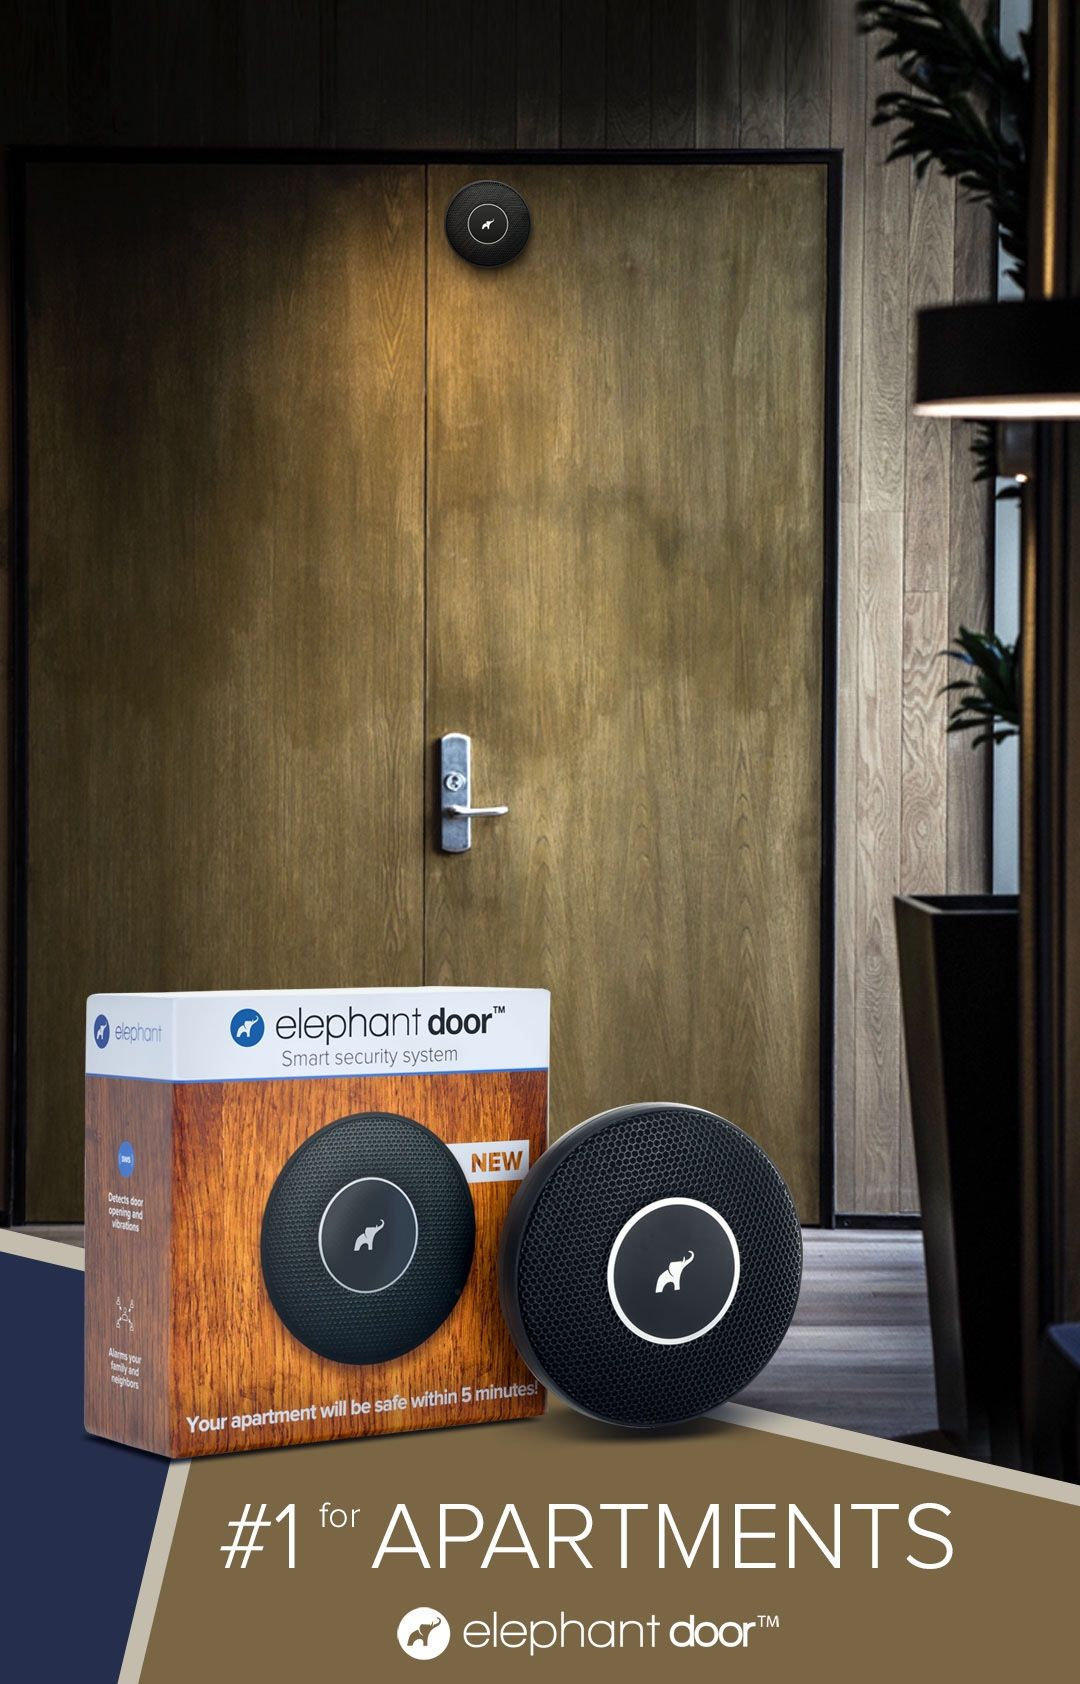 Design your apartment with New Safety👌 Elephant Door #1 super-alarm ...